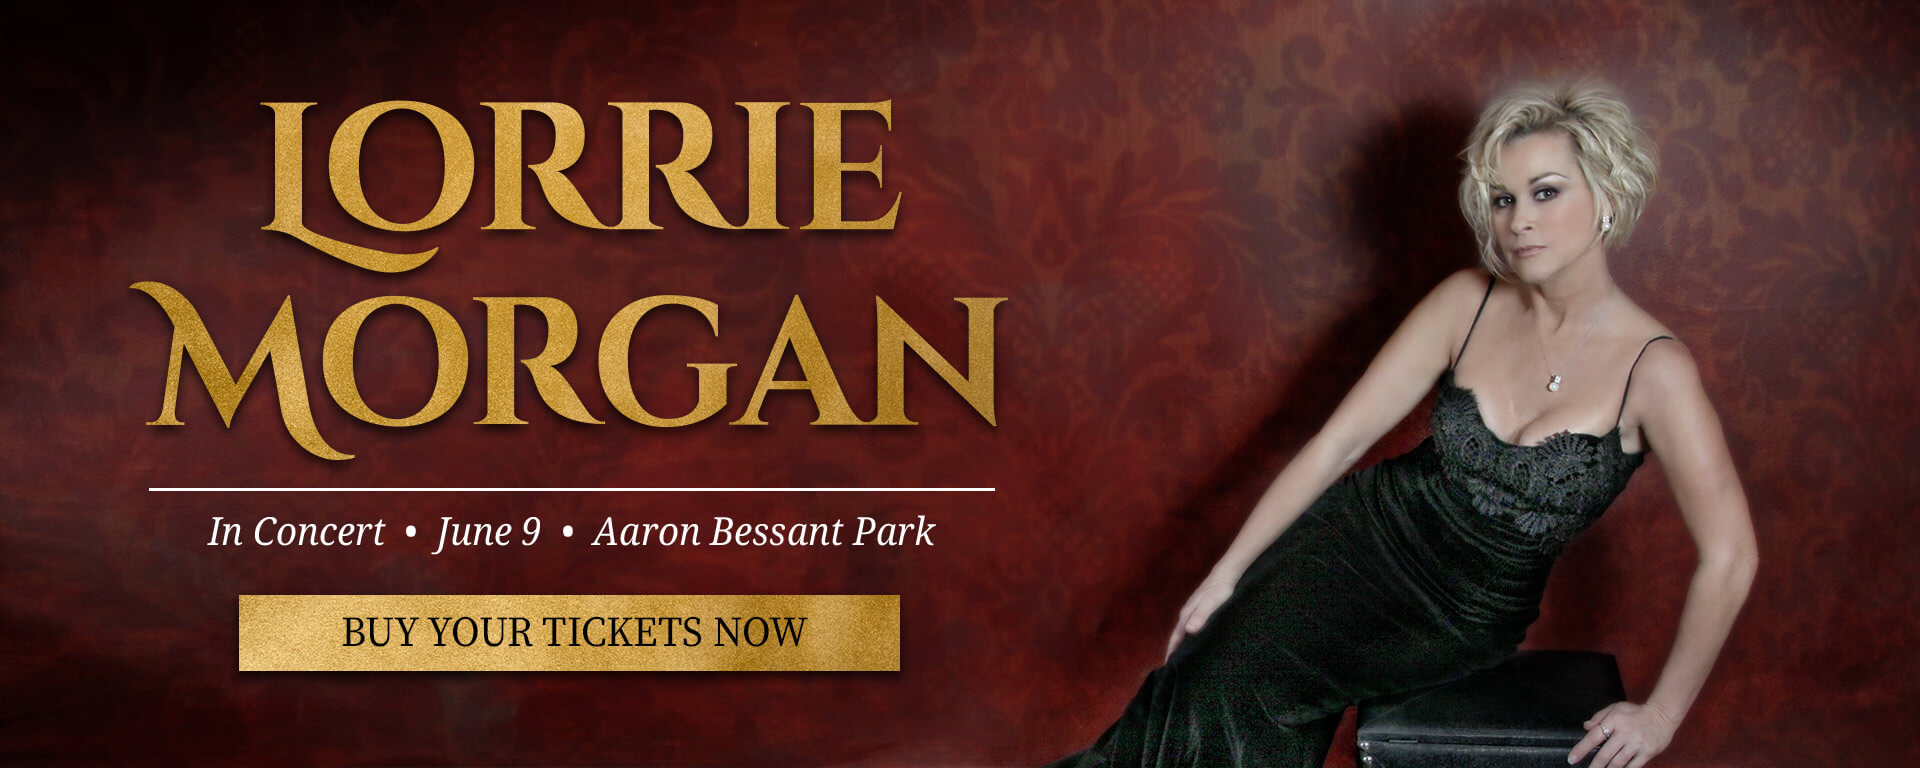 Lorrie-Morgan-Concert-buy